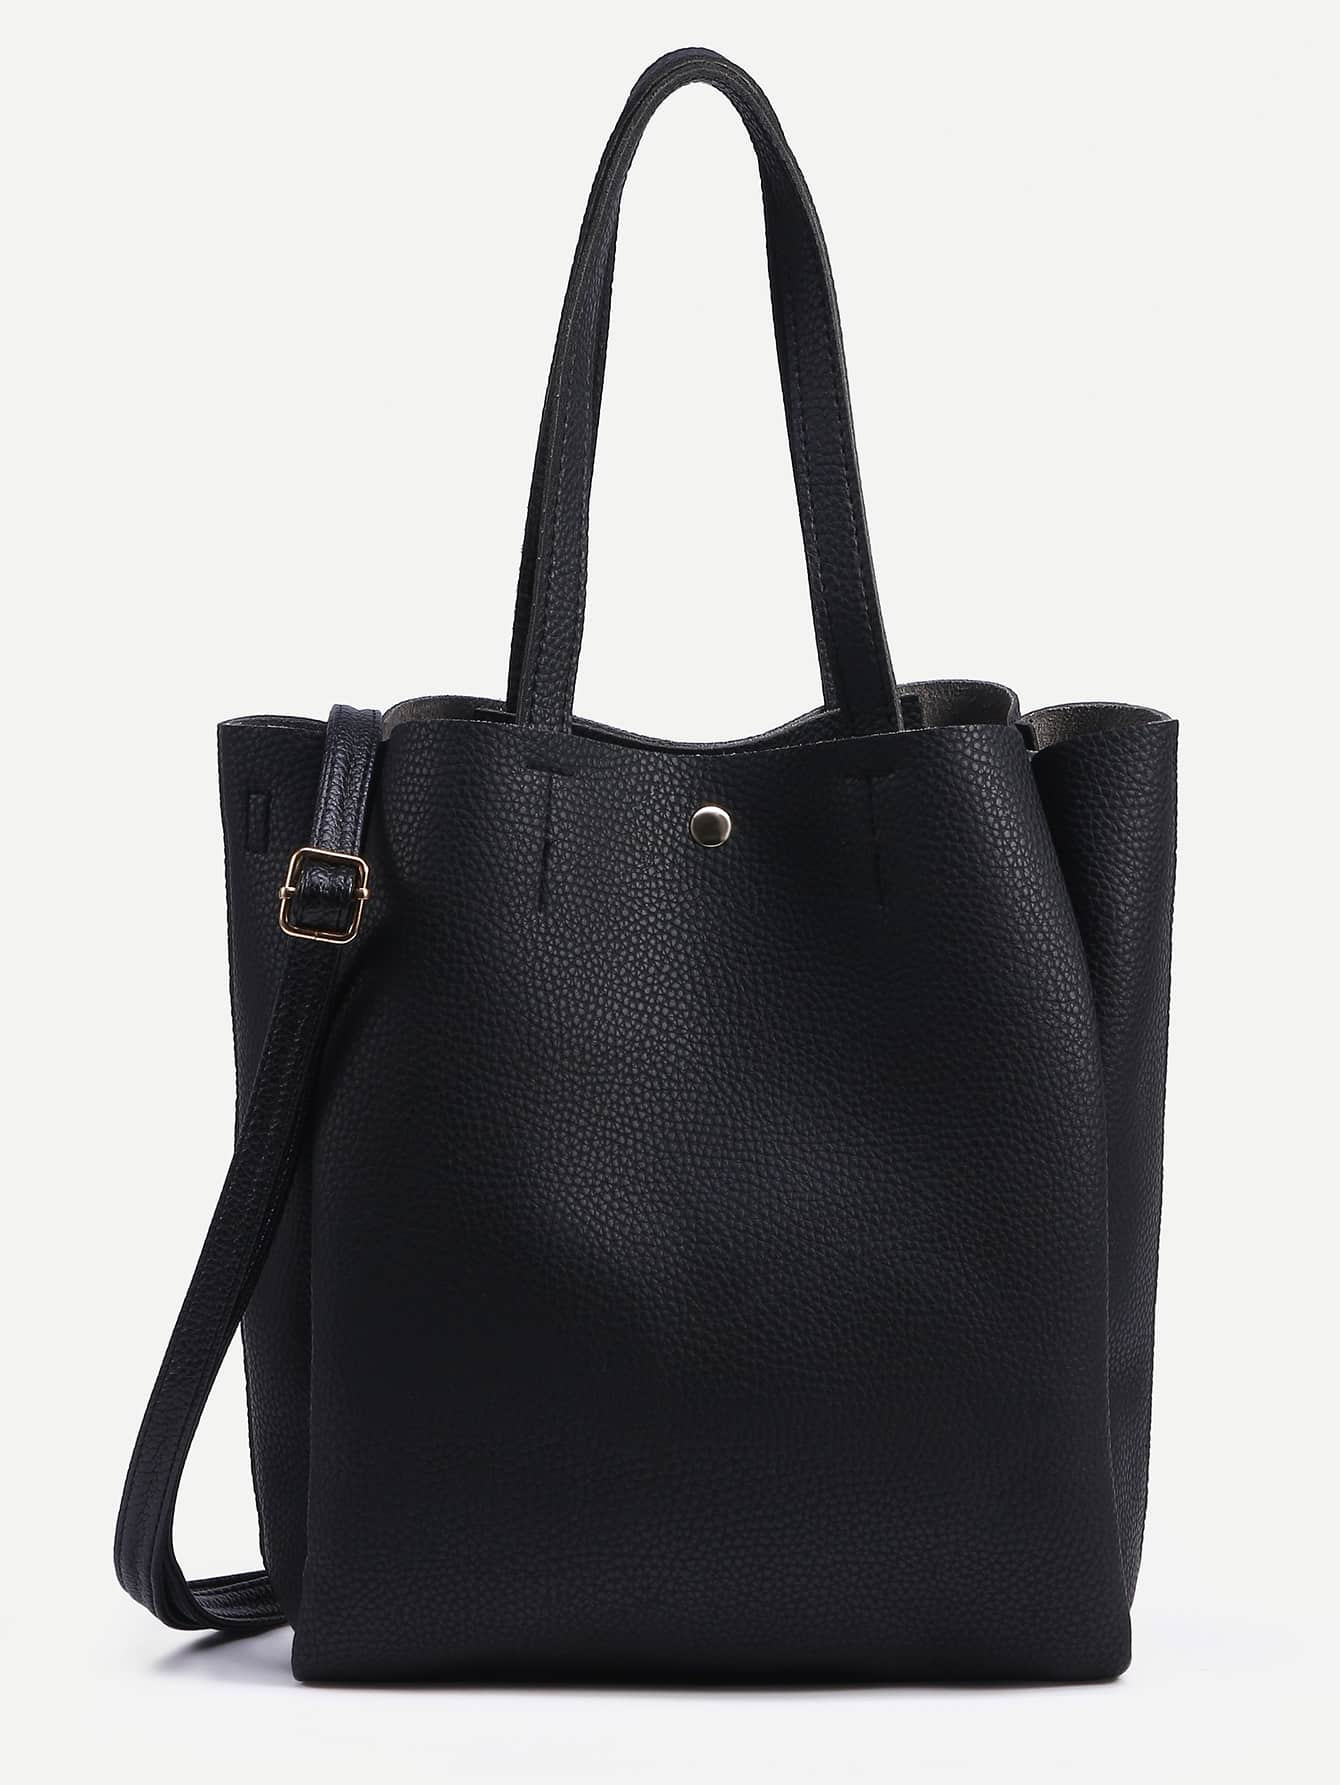 Black Pebbled Layered Tote Bag With Strap